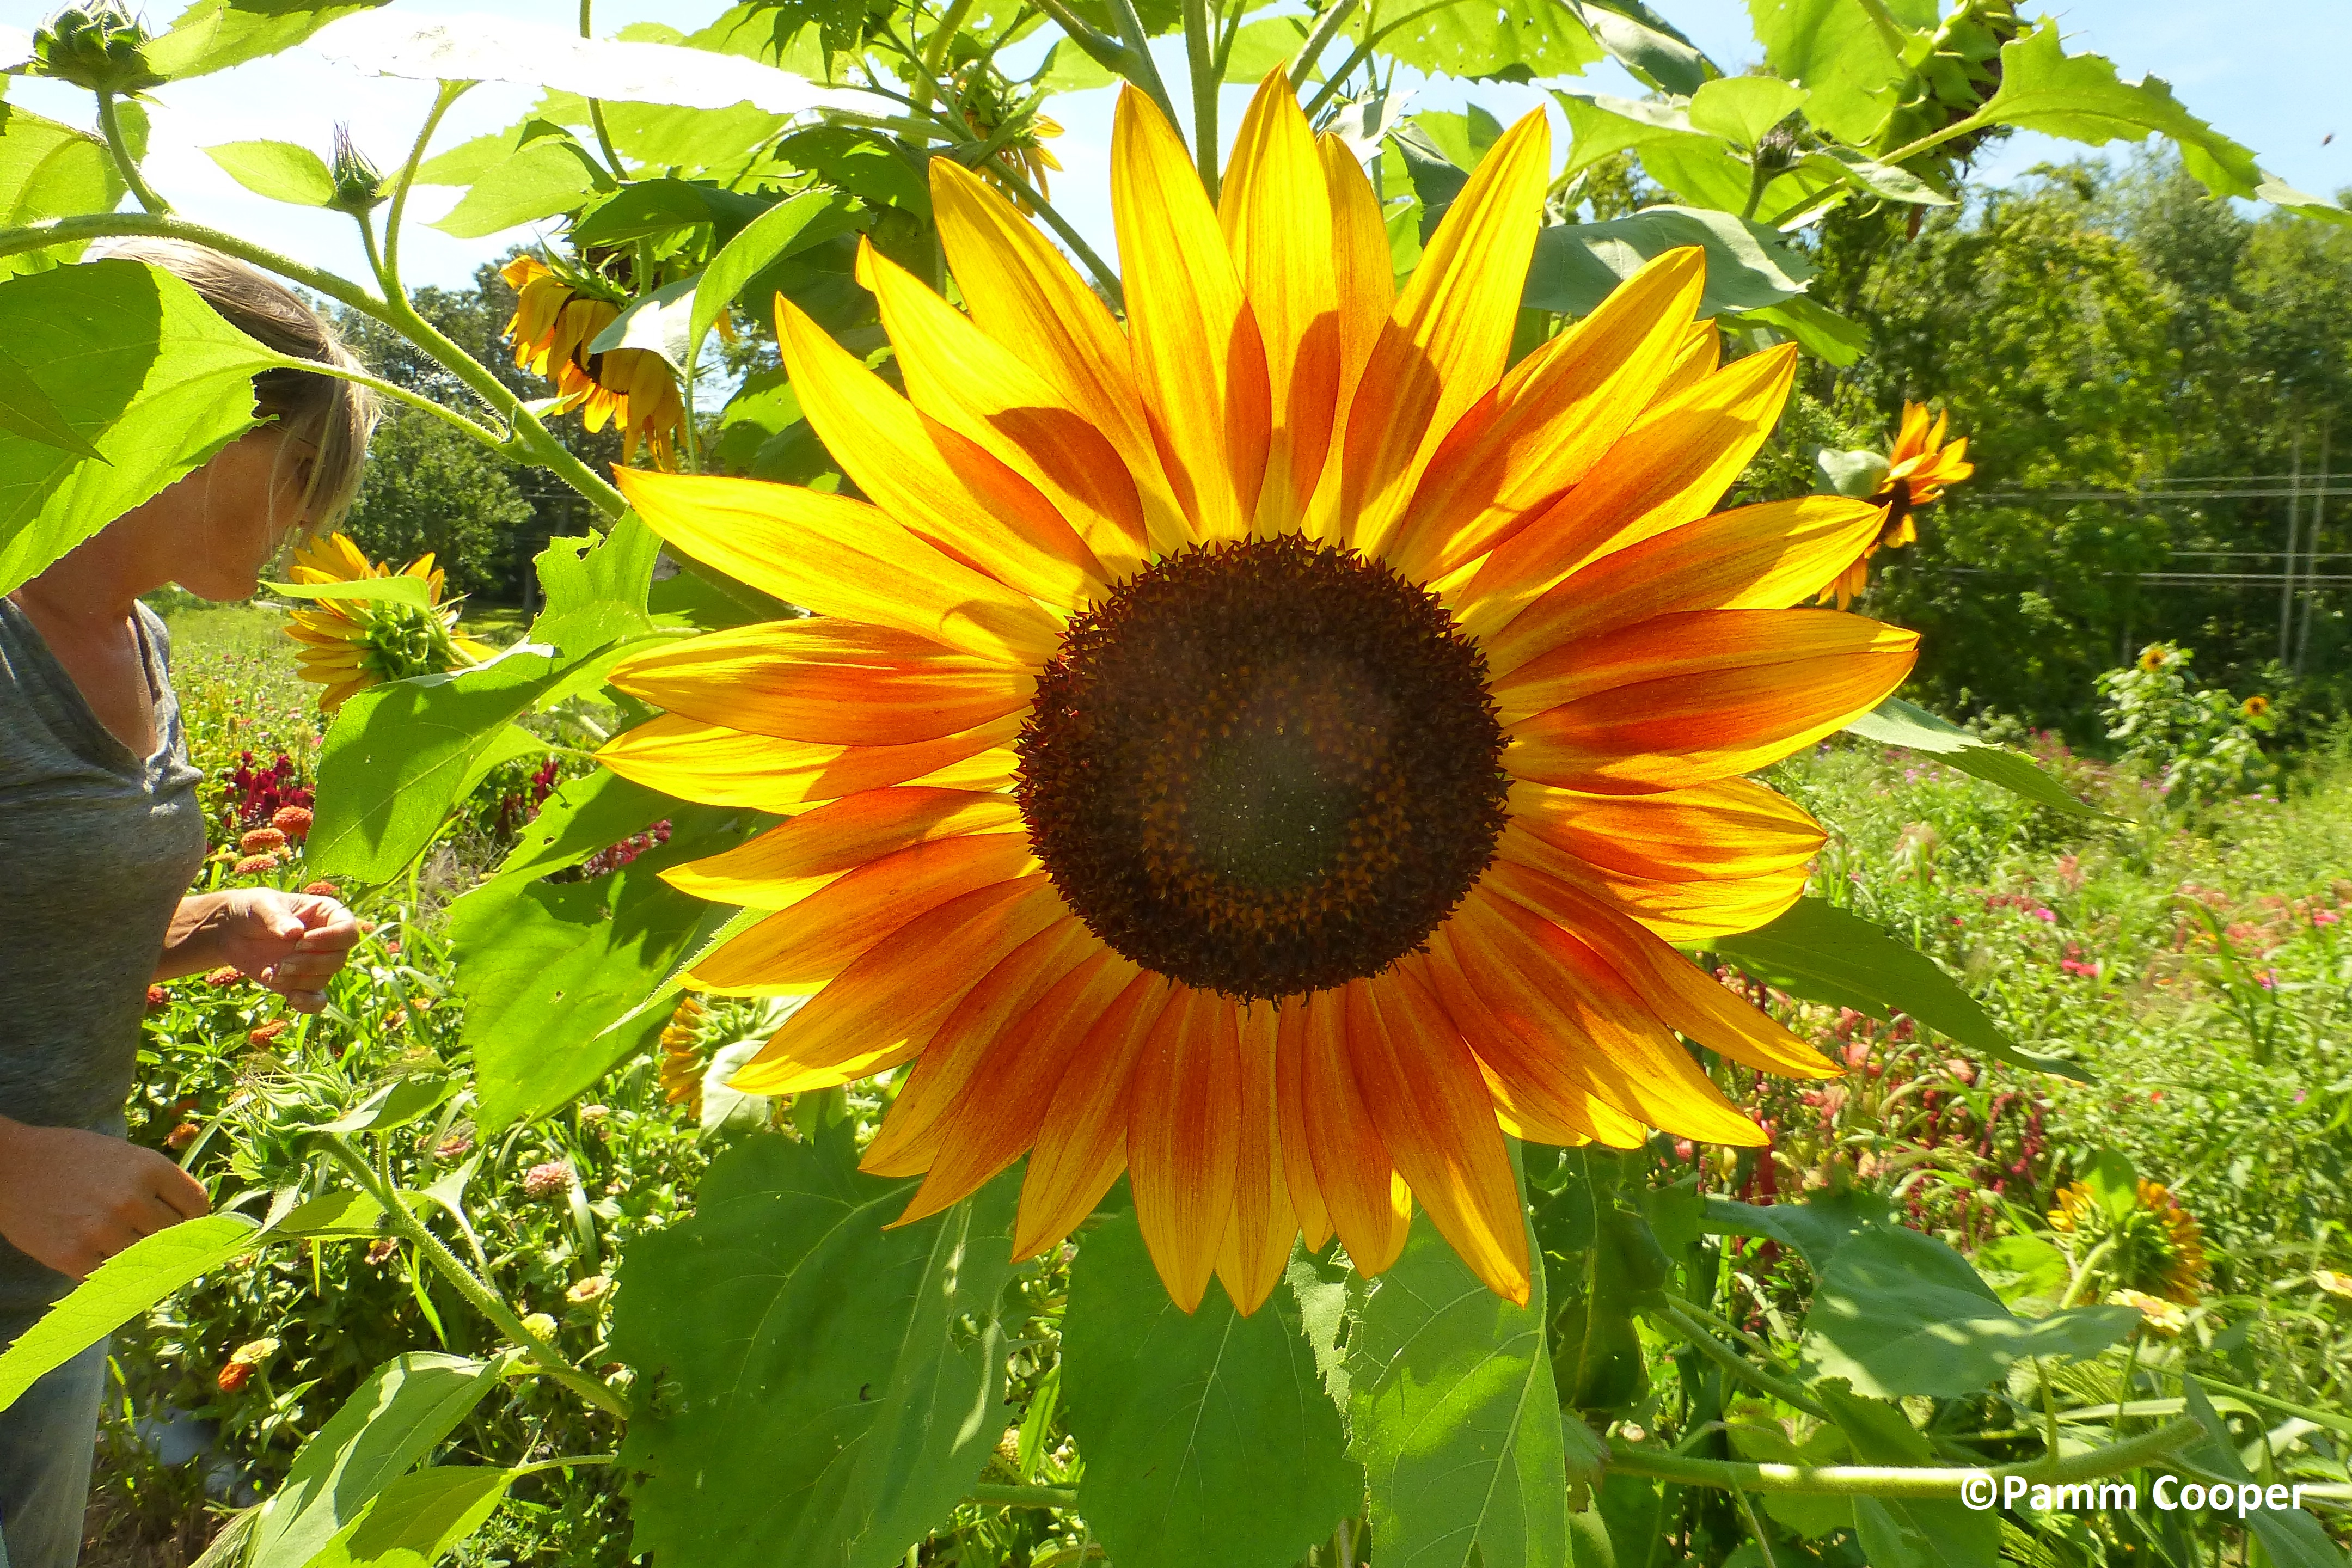 Sunflowers can be started from seed and should be in full bloom by the end of August